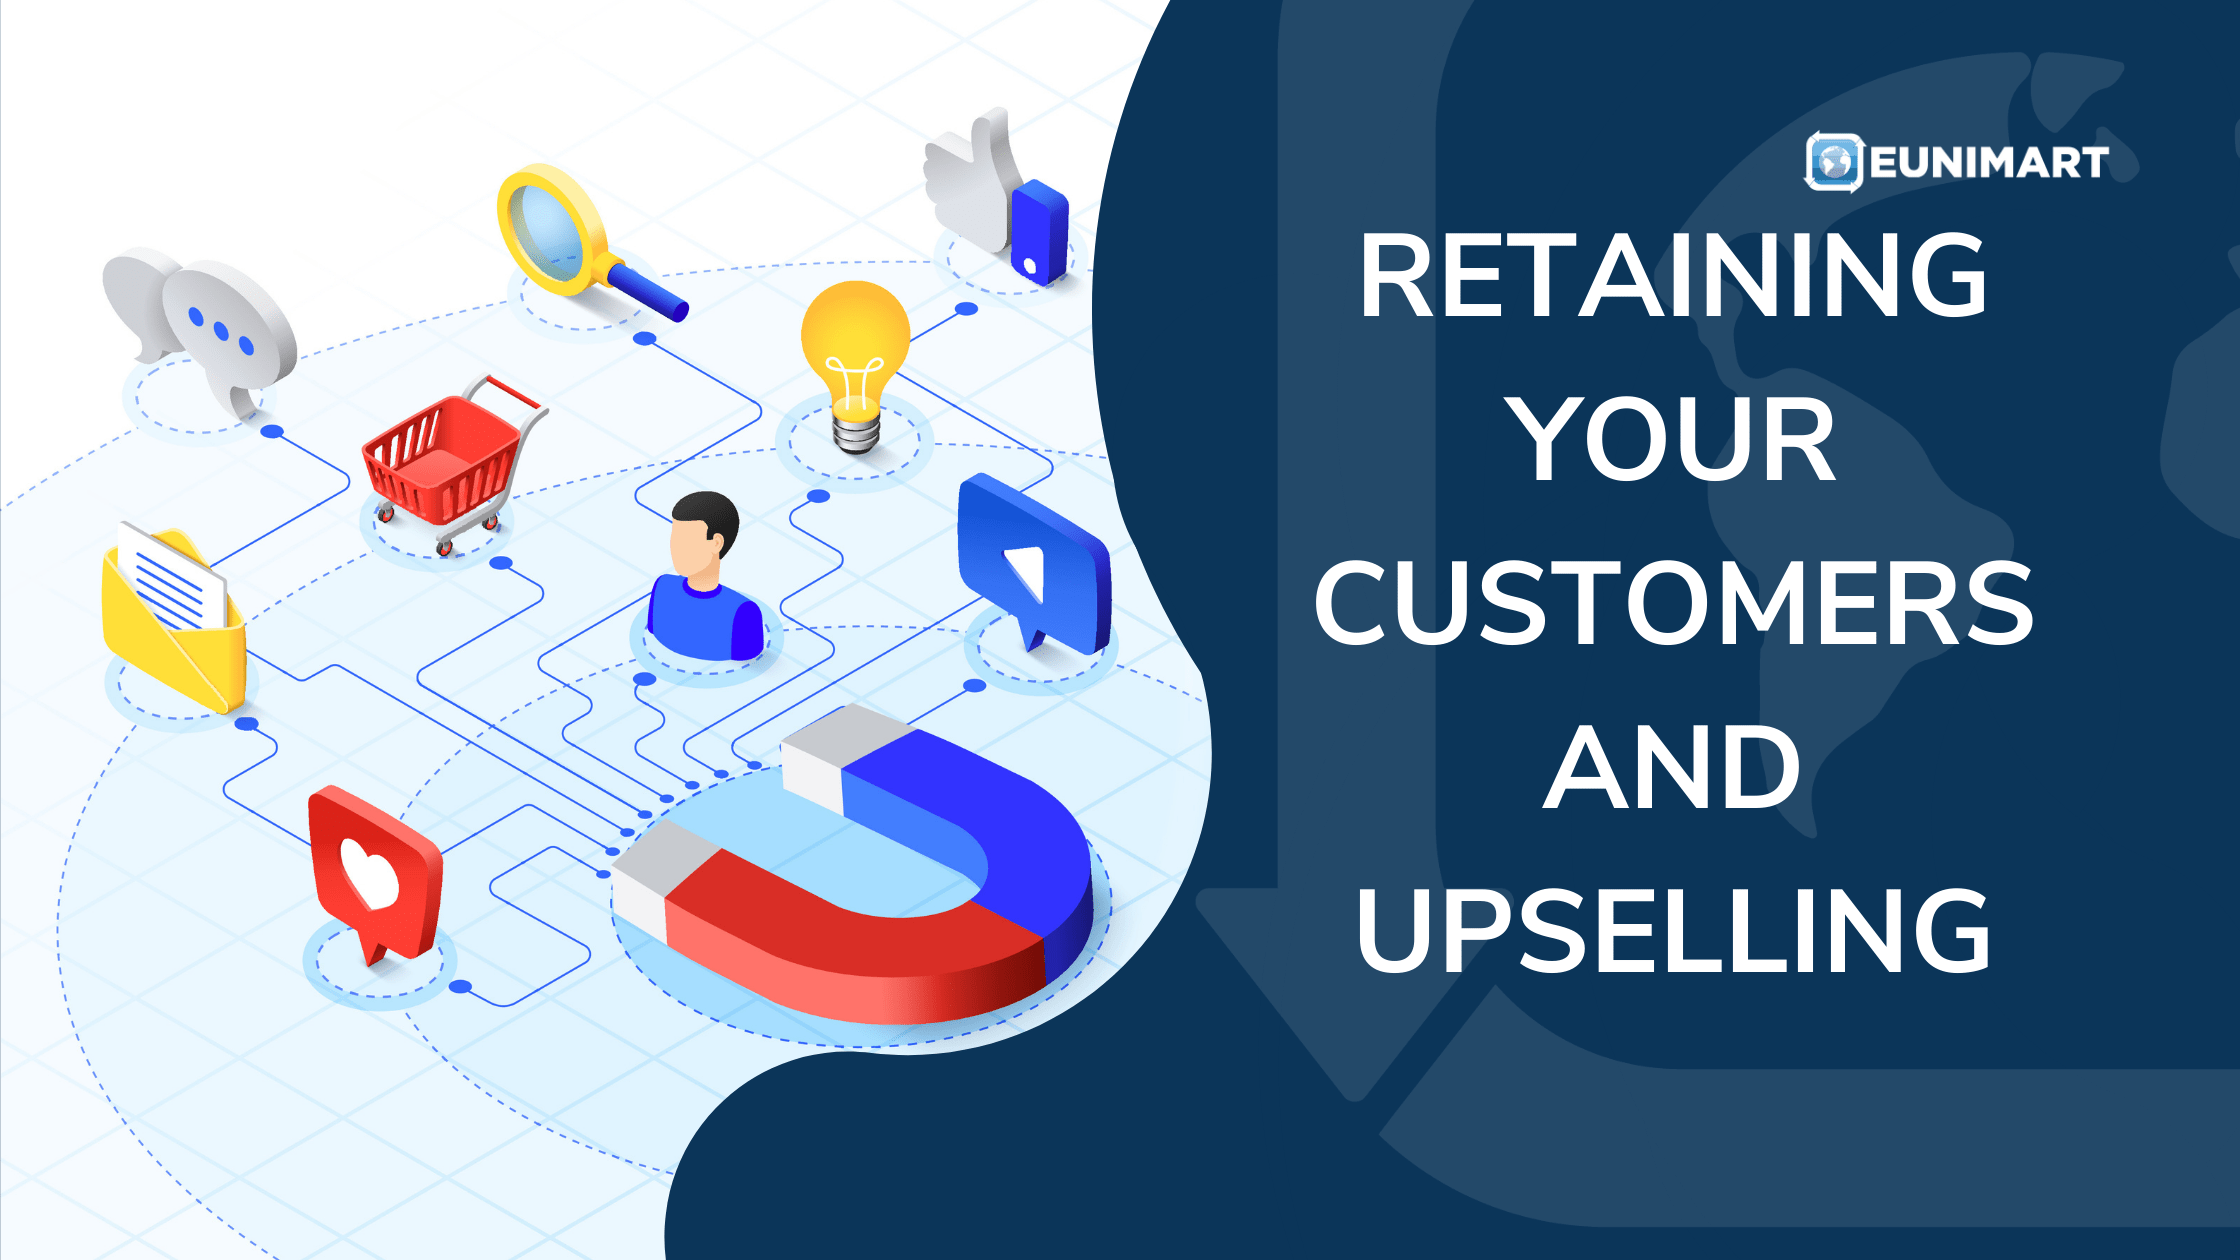 Retaining Your Customers and Up Selling